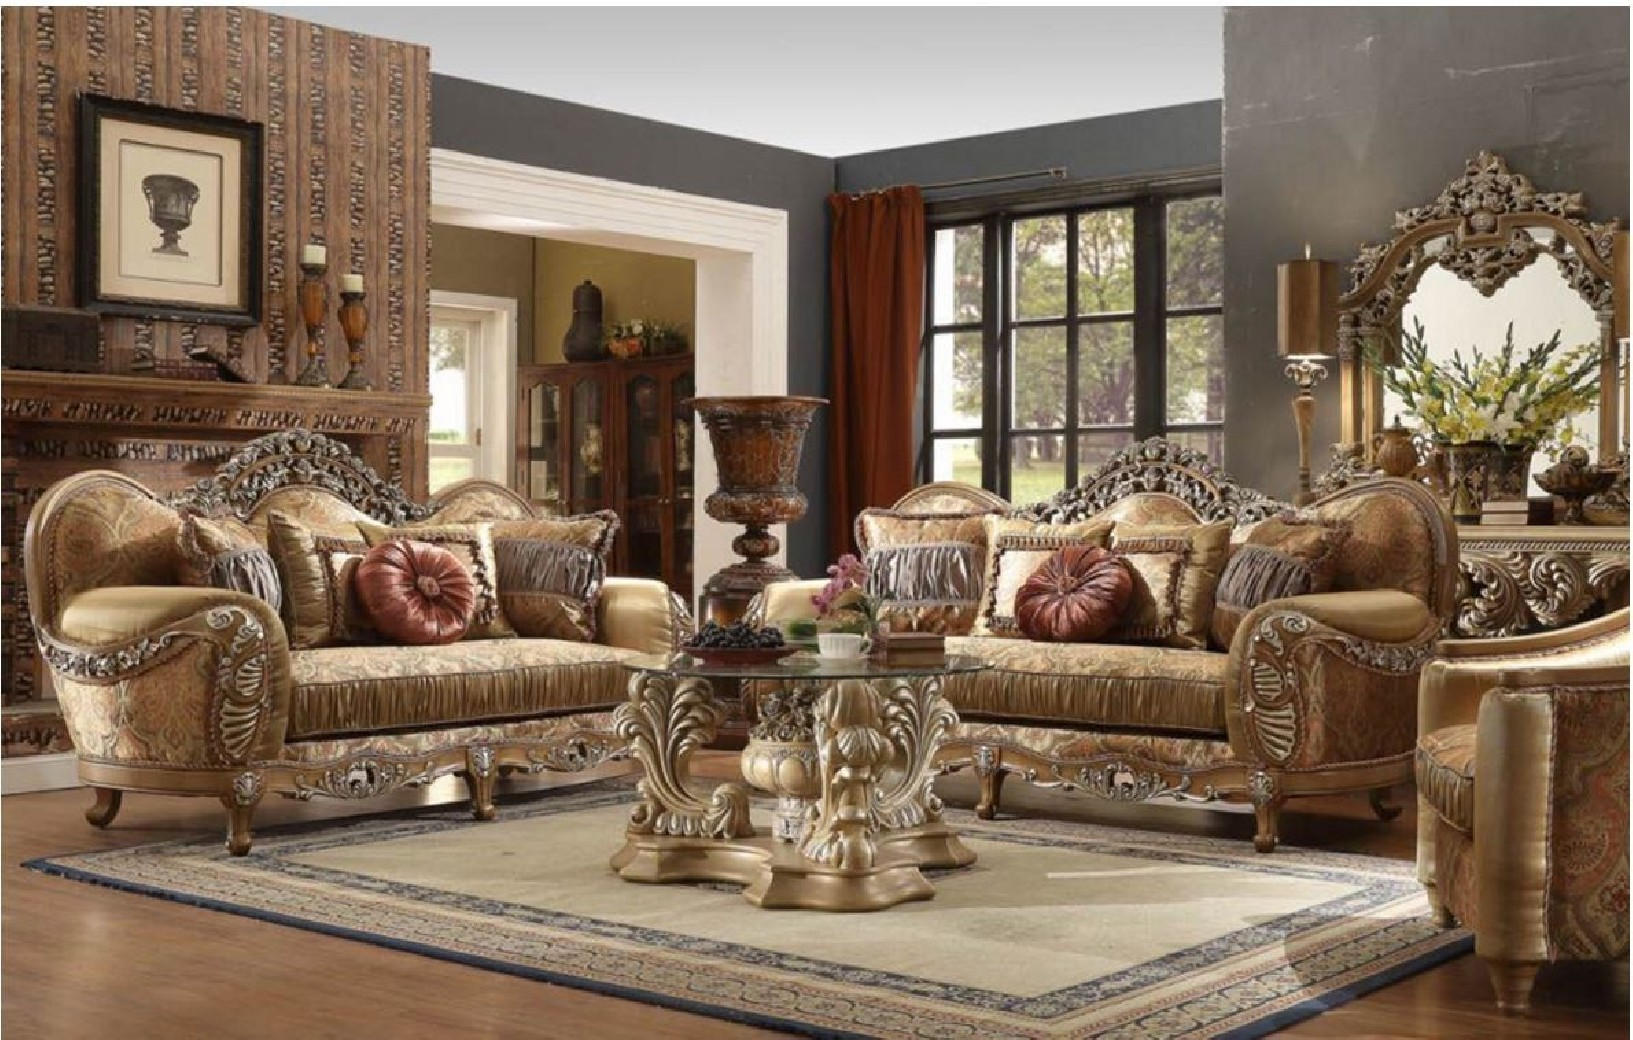 Victoria sofa set victorian traditional antique style sofa for Living room sets